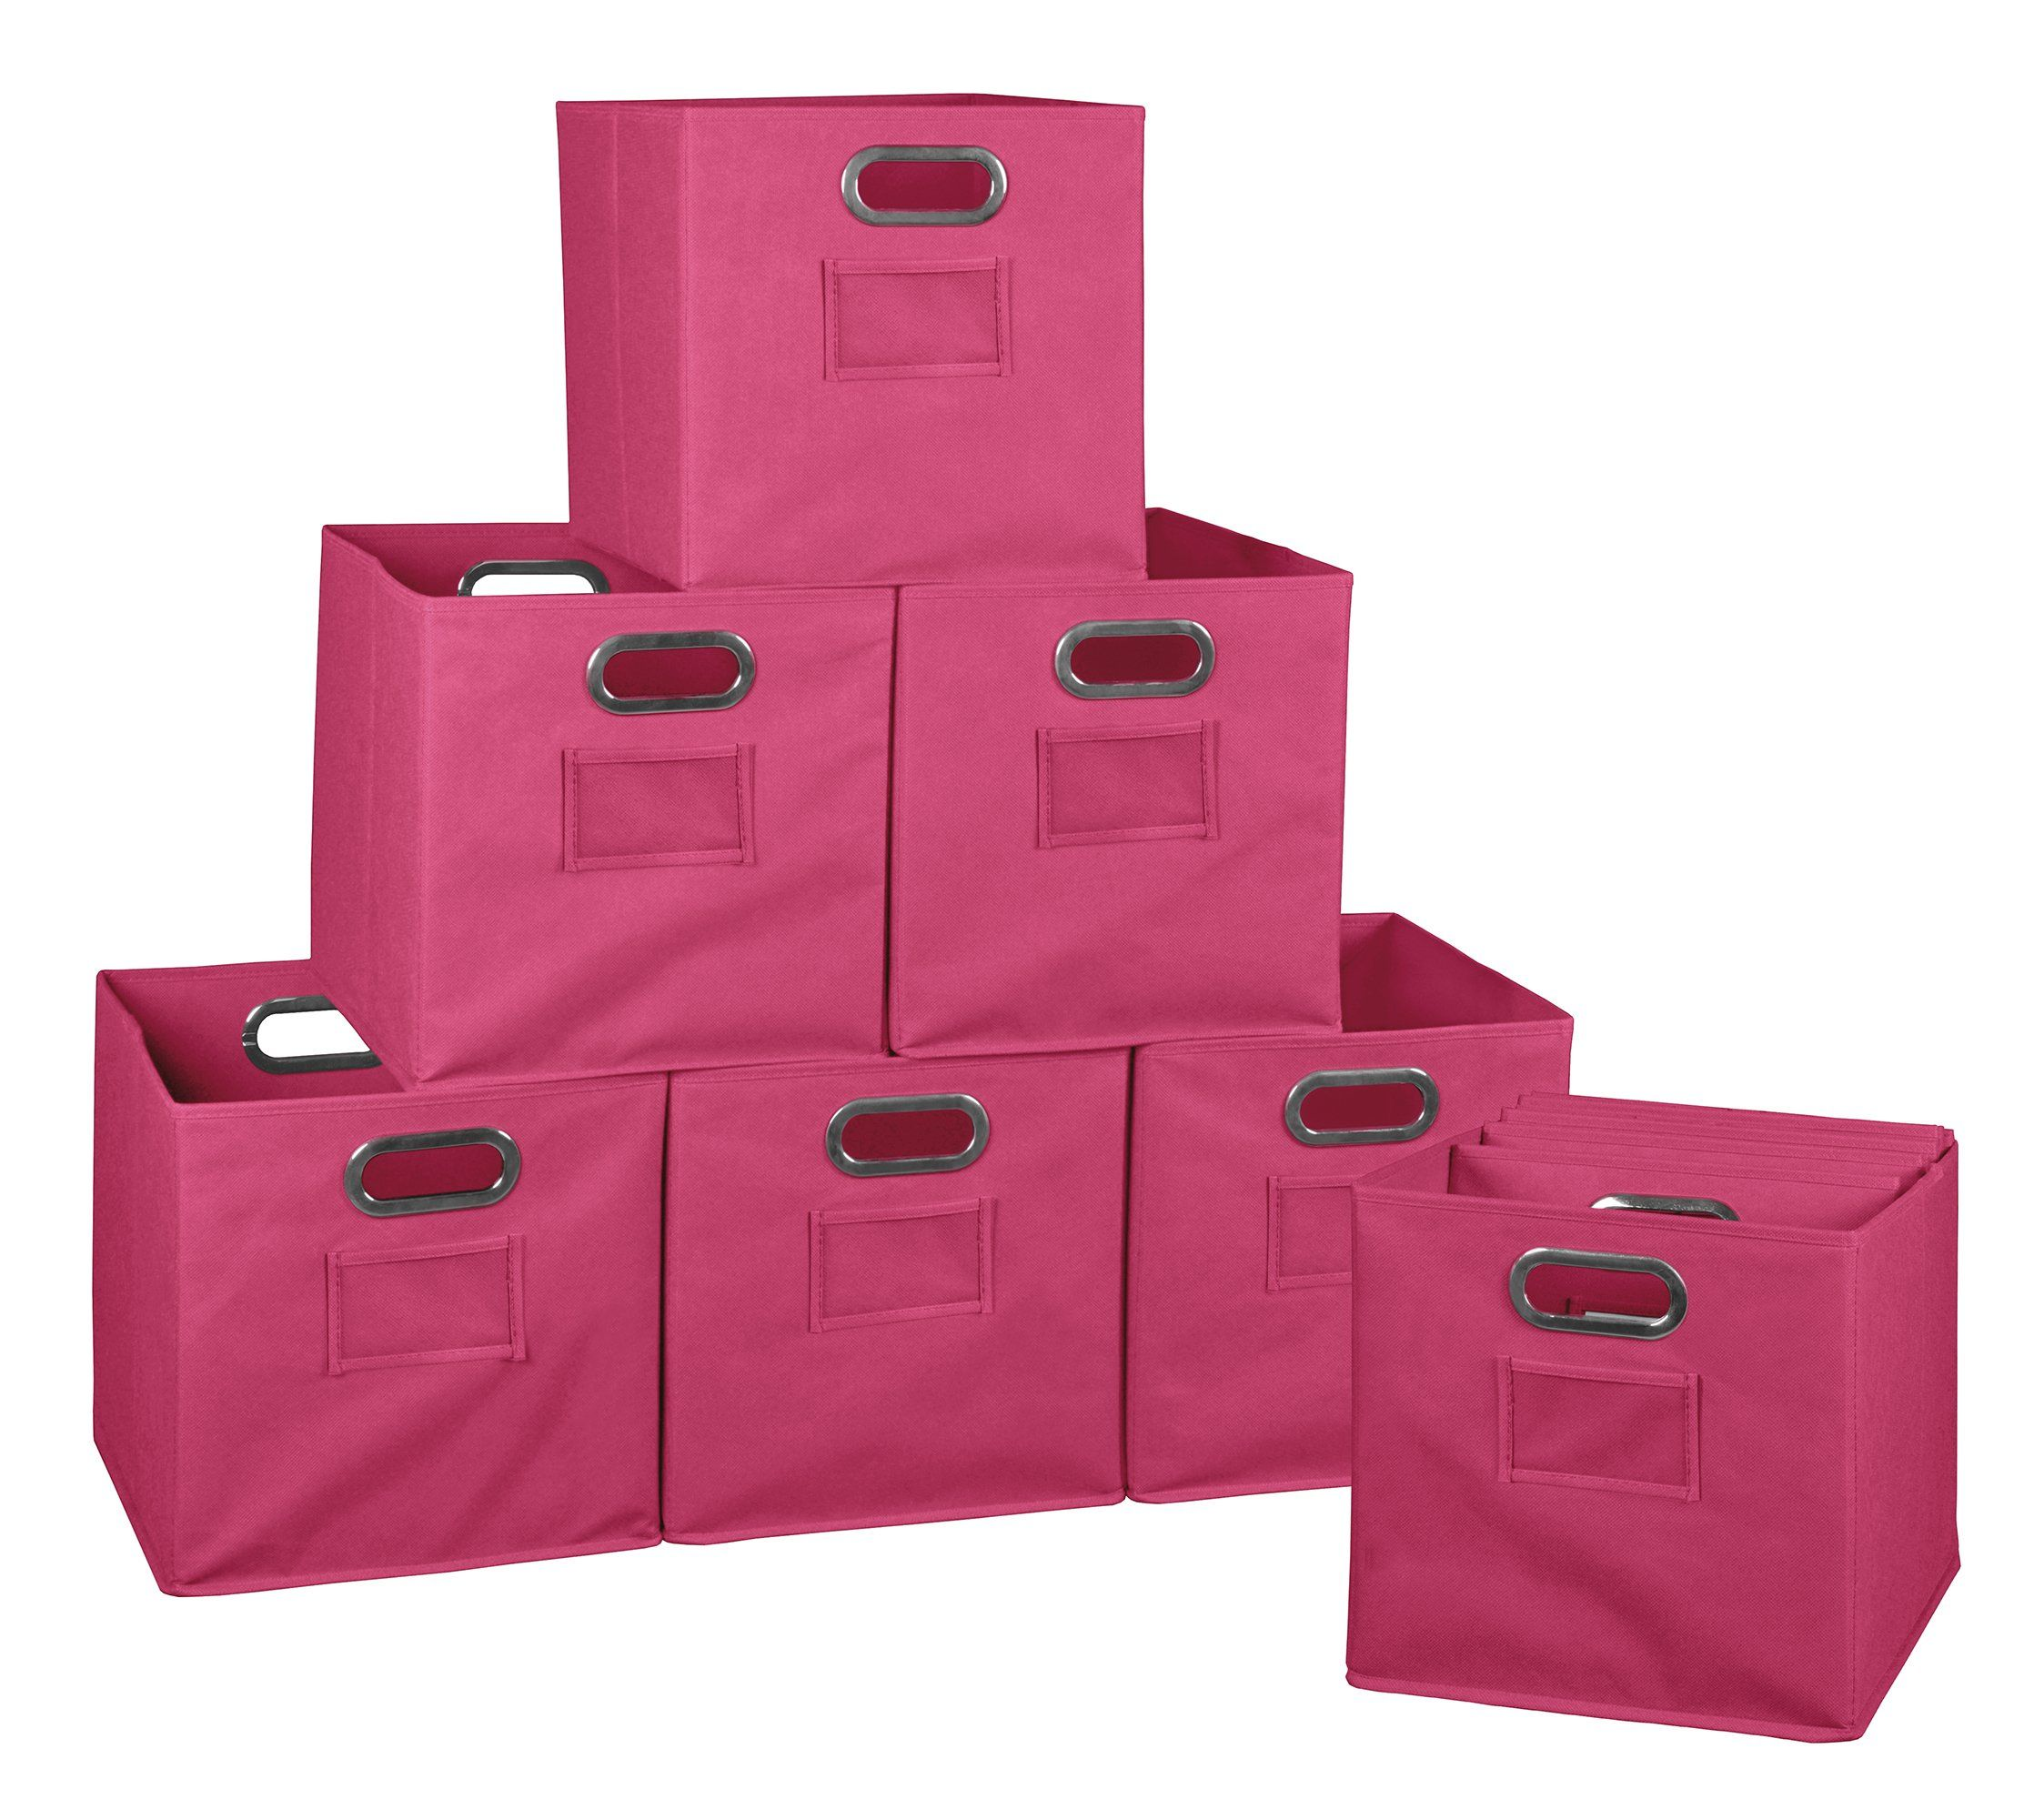 Pink Bins Niche Cubo Set Of 12 Foldable Fabric Storage Bins Pink Products